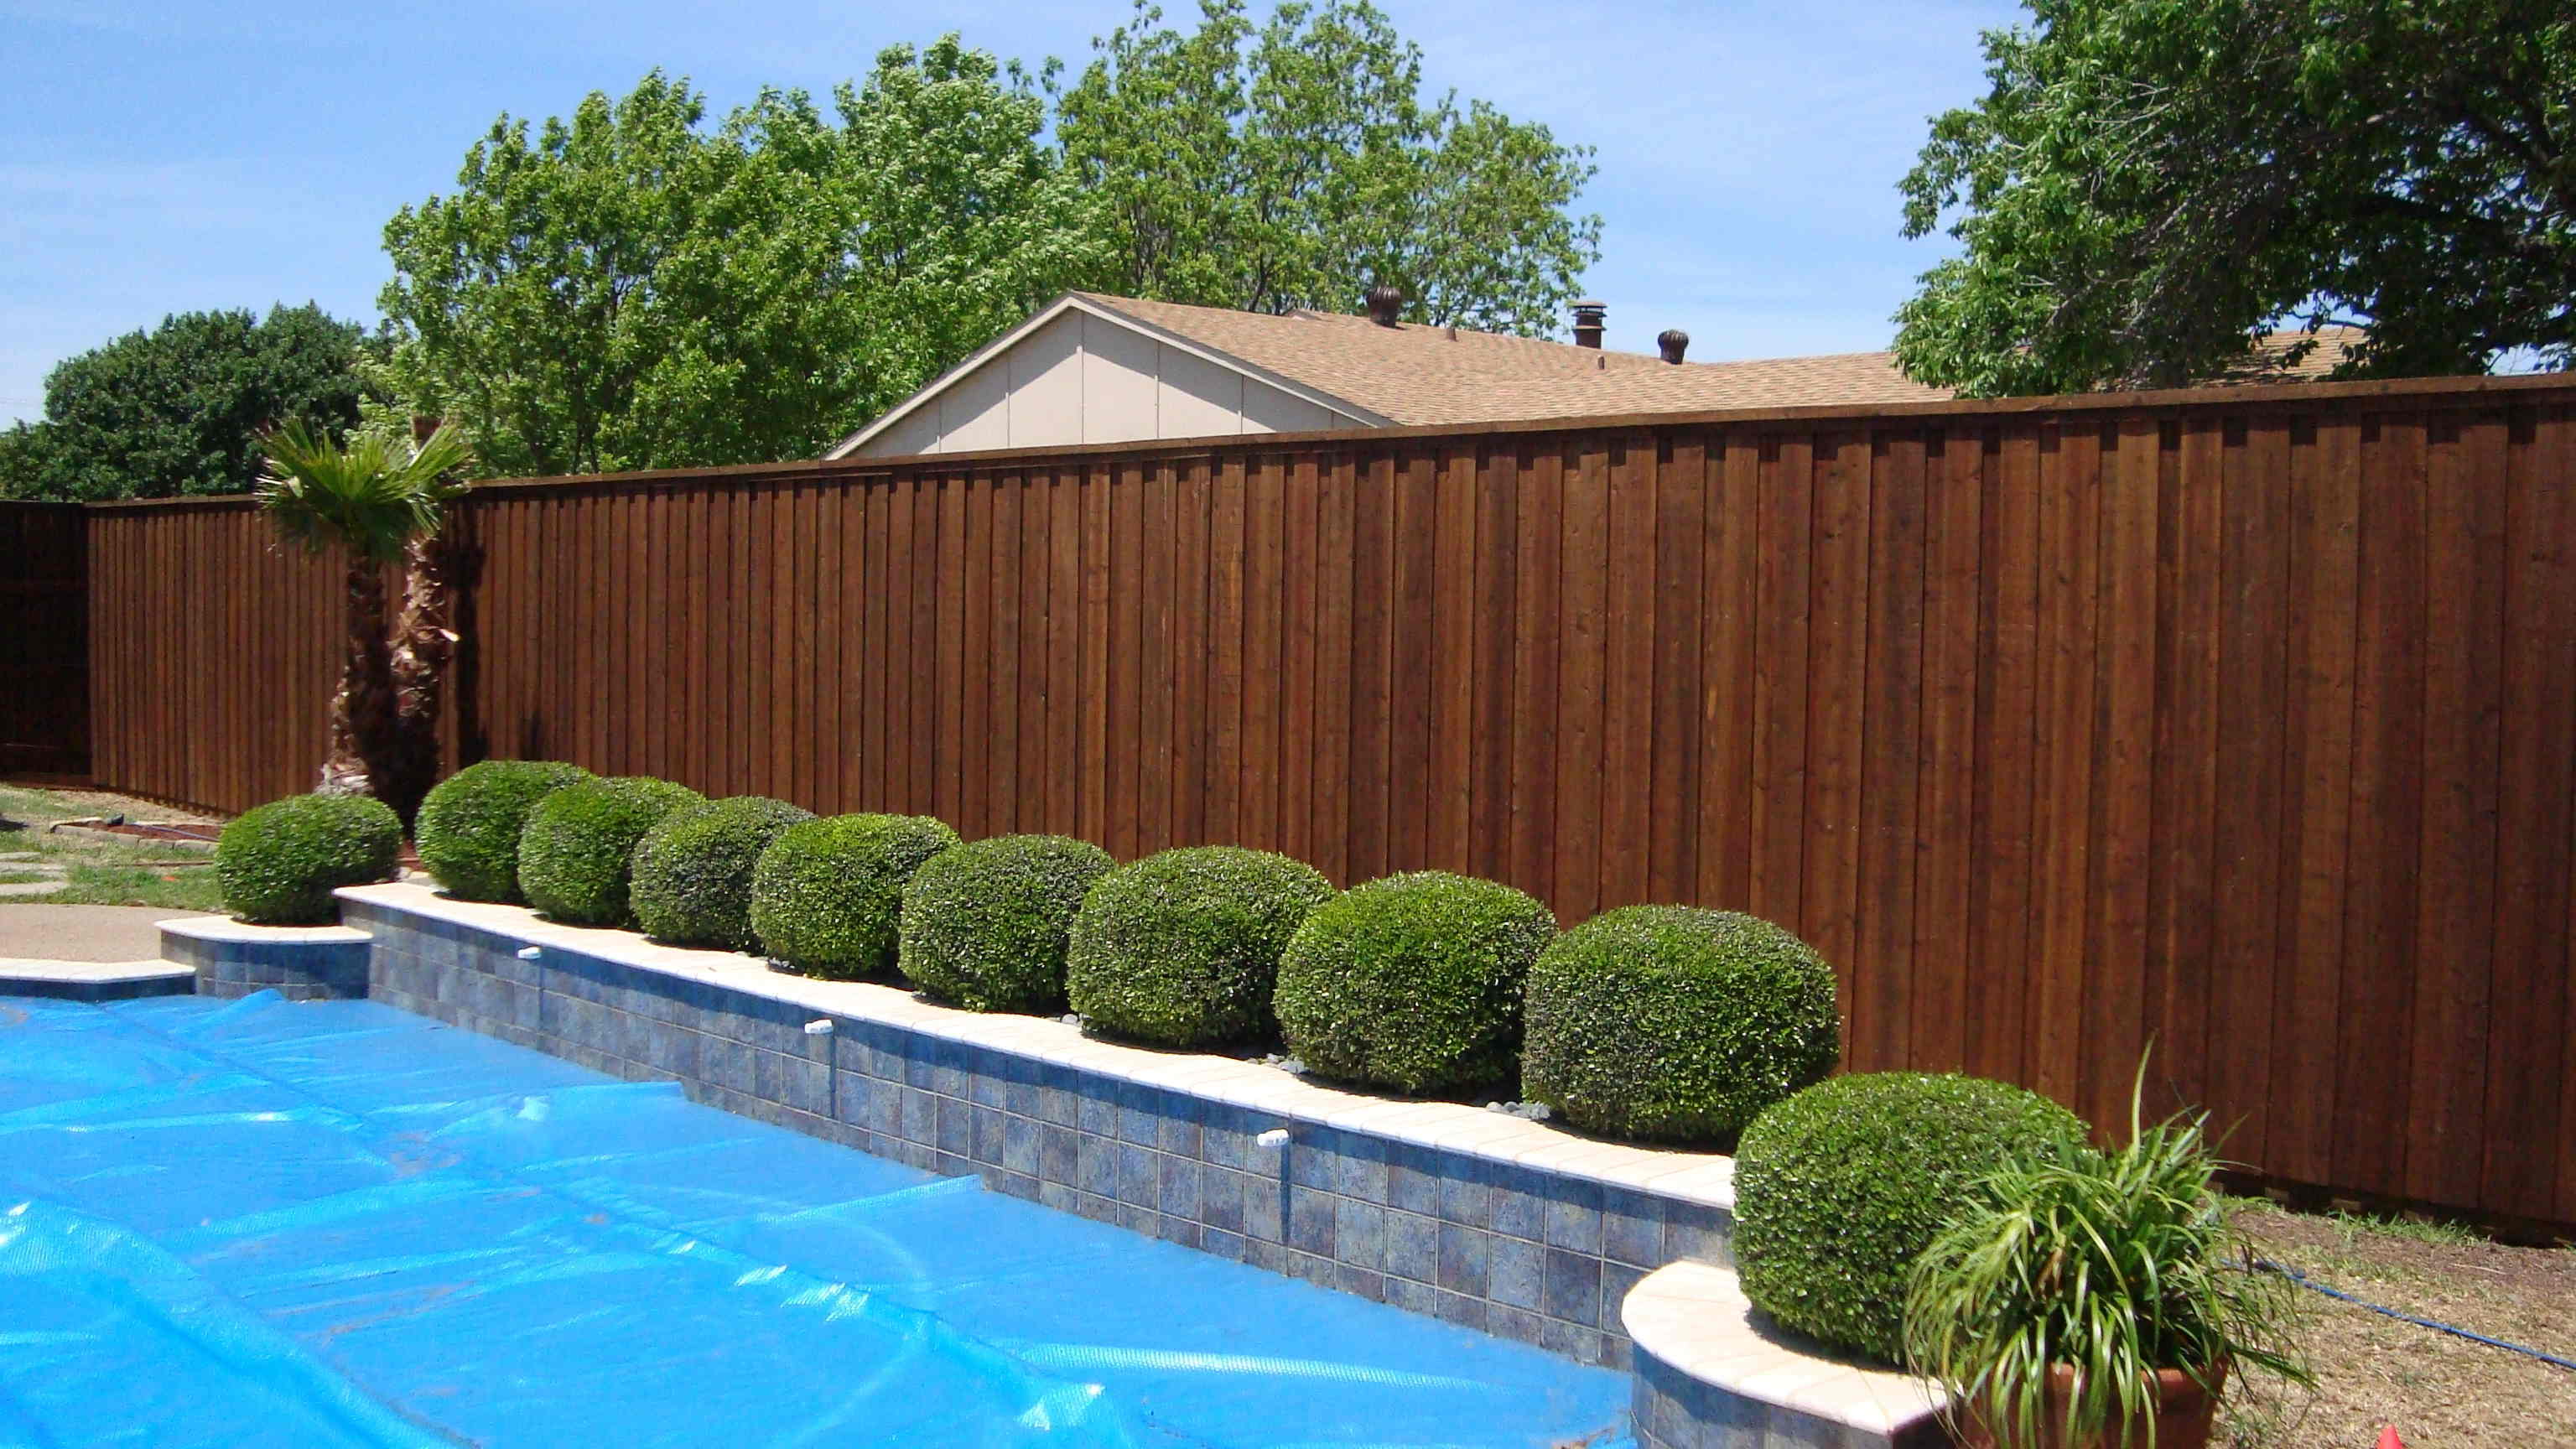 wood-fence-by-pool-4